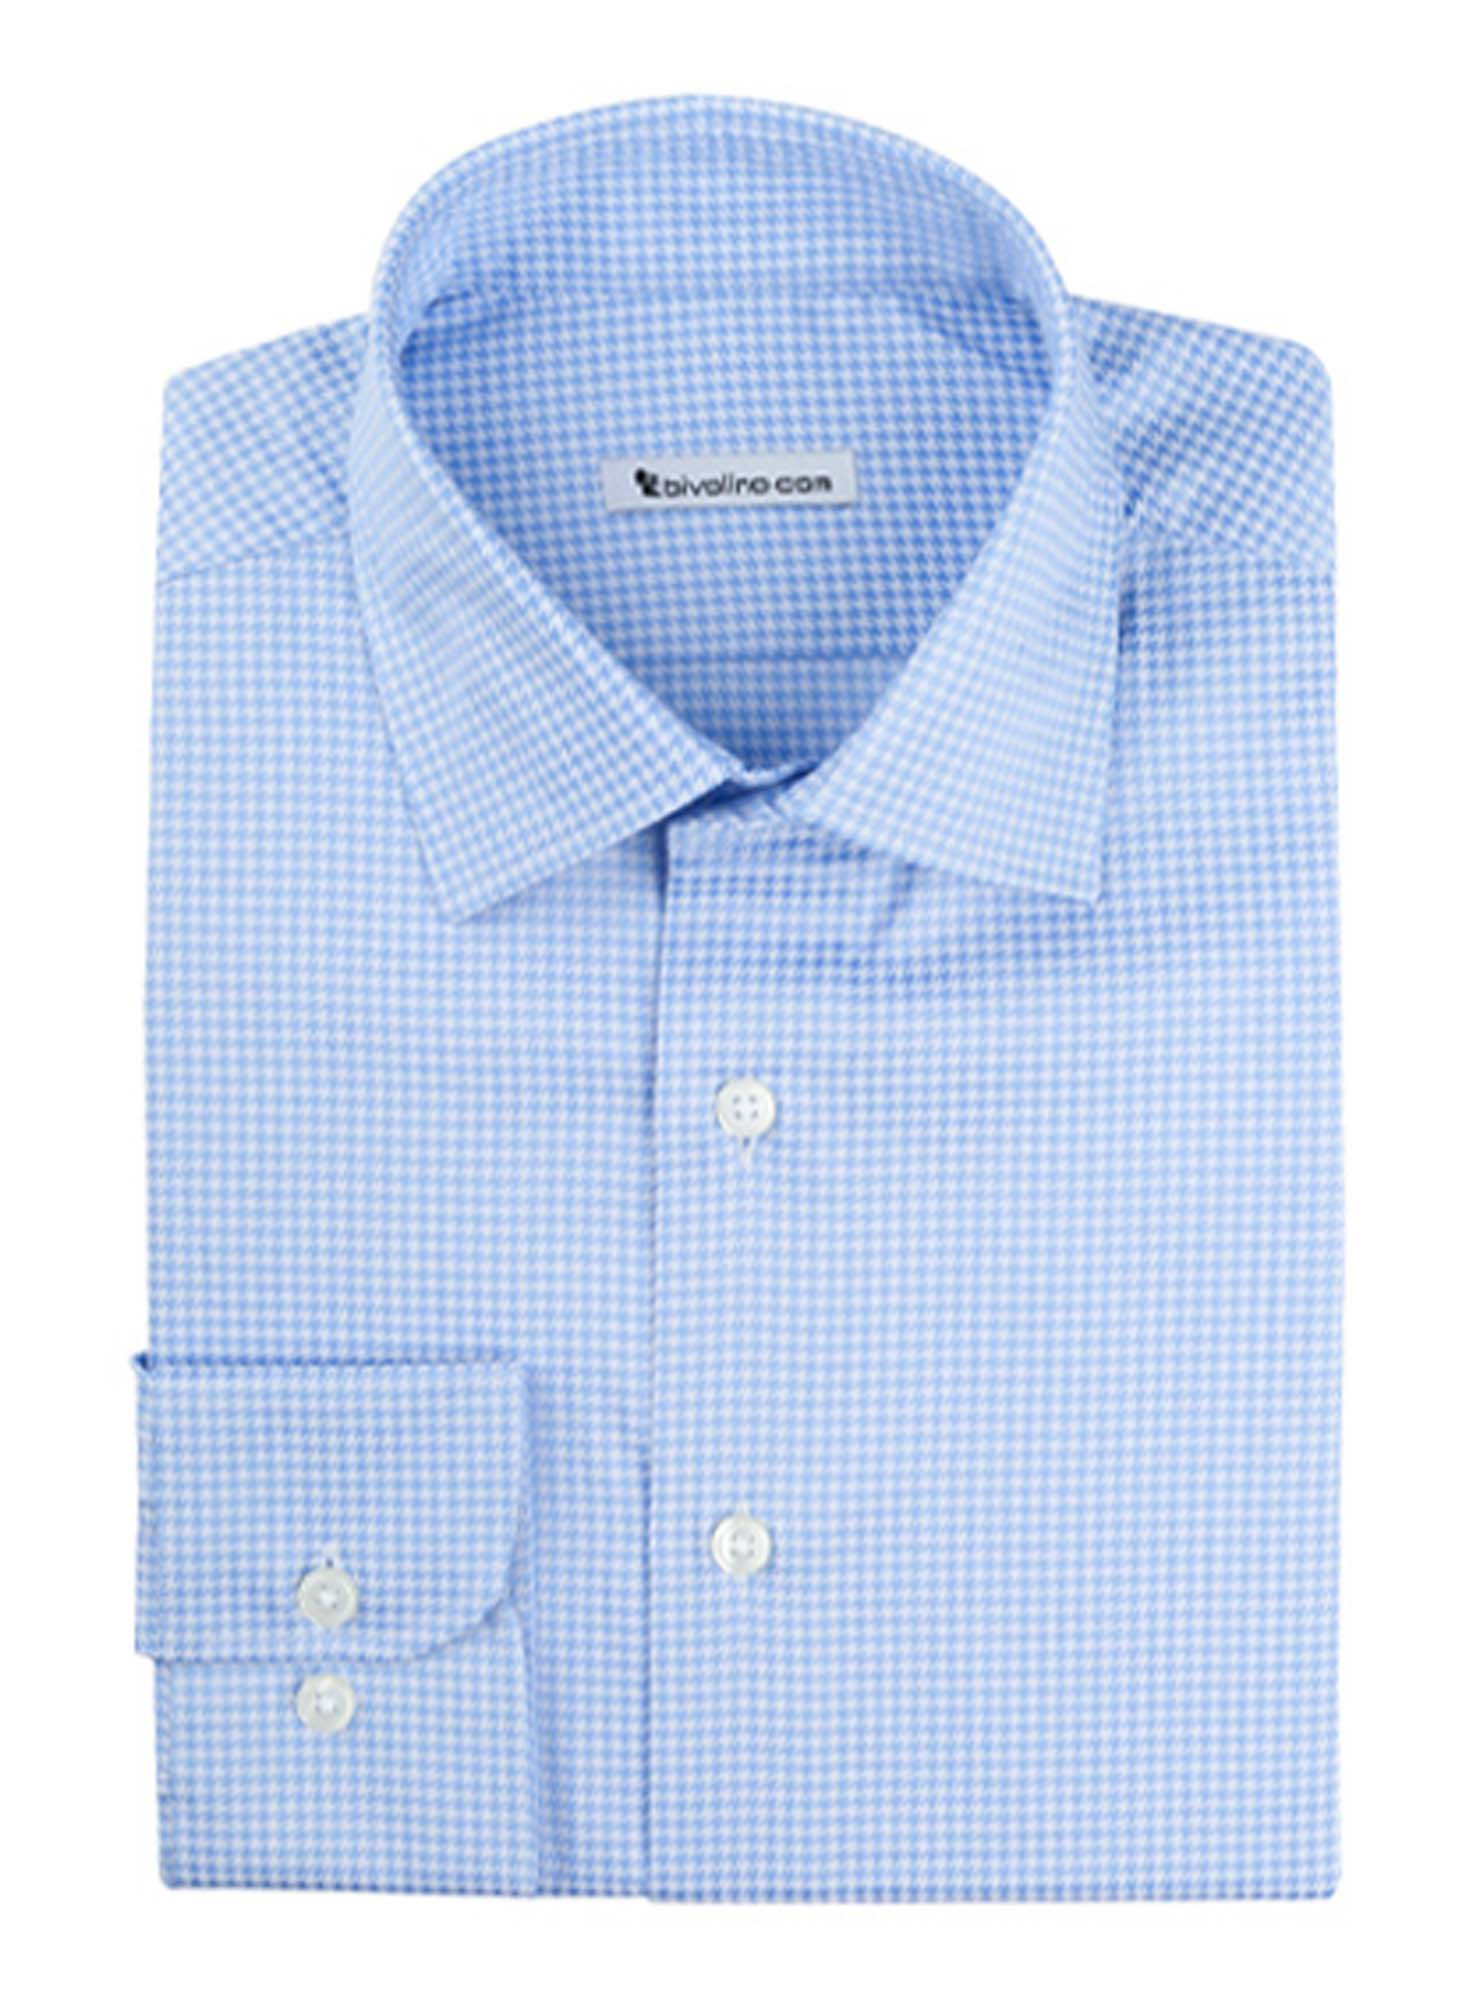 VELLETRI  - men's shirt cotton two-fold 2ply Egyptian - Dobby dots-pattern- RIGOR 6